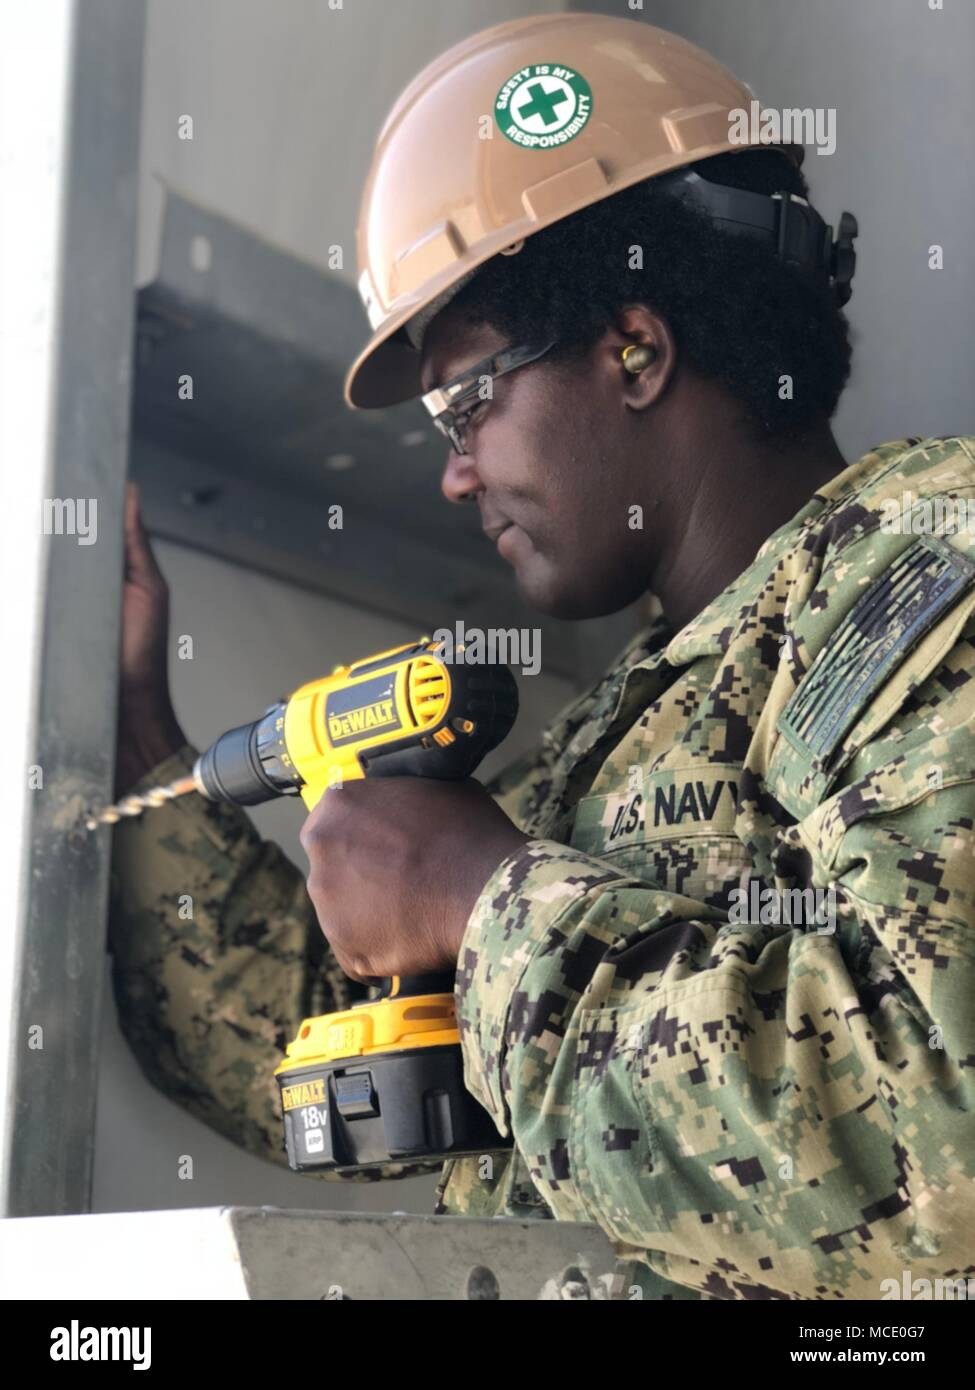 Utilitiesman 3rd Class LaToya Graham drills bolt sized holes to install a track for a roll up door to be installed in a alpha pre-engineered building. NMCB 11 is homeported in Gulfport, Mississippi, and is part of the Naval Construction Force (NCF). They currently have personnel assigned to more than 15 locations world-wide, performing a variety of missions in support of the Navy and the Department of Defense. Stock Photo